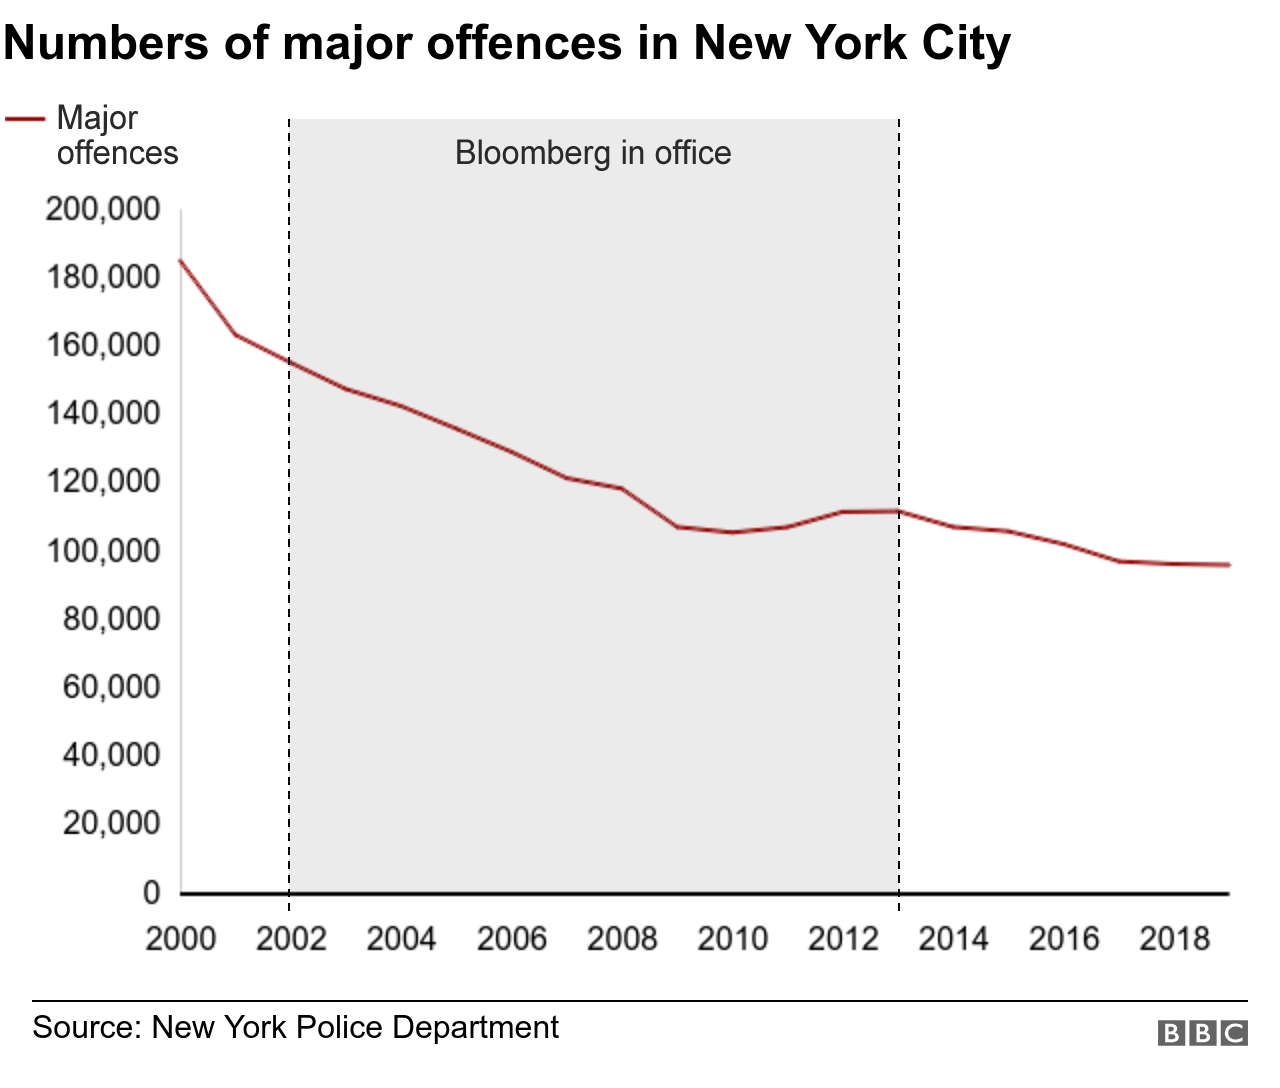 Numbers of major offences in New York City